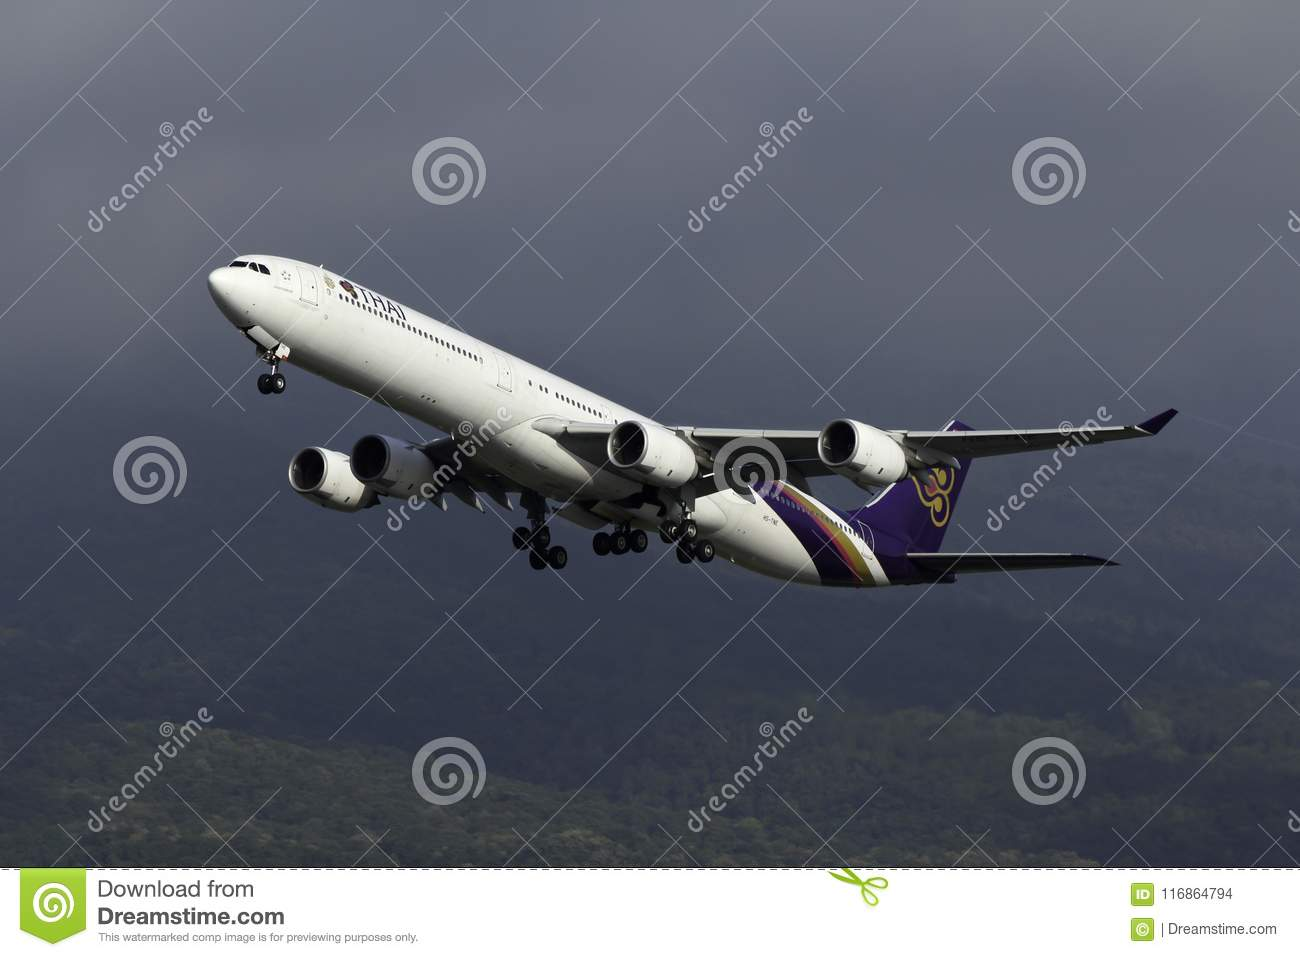 Samolot Thai Airways International Aerobus A340 Bierze daleko